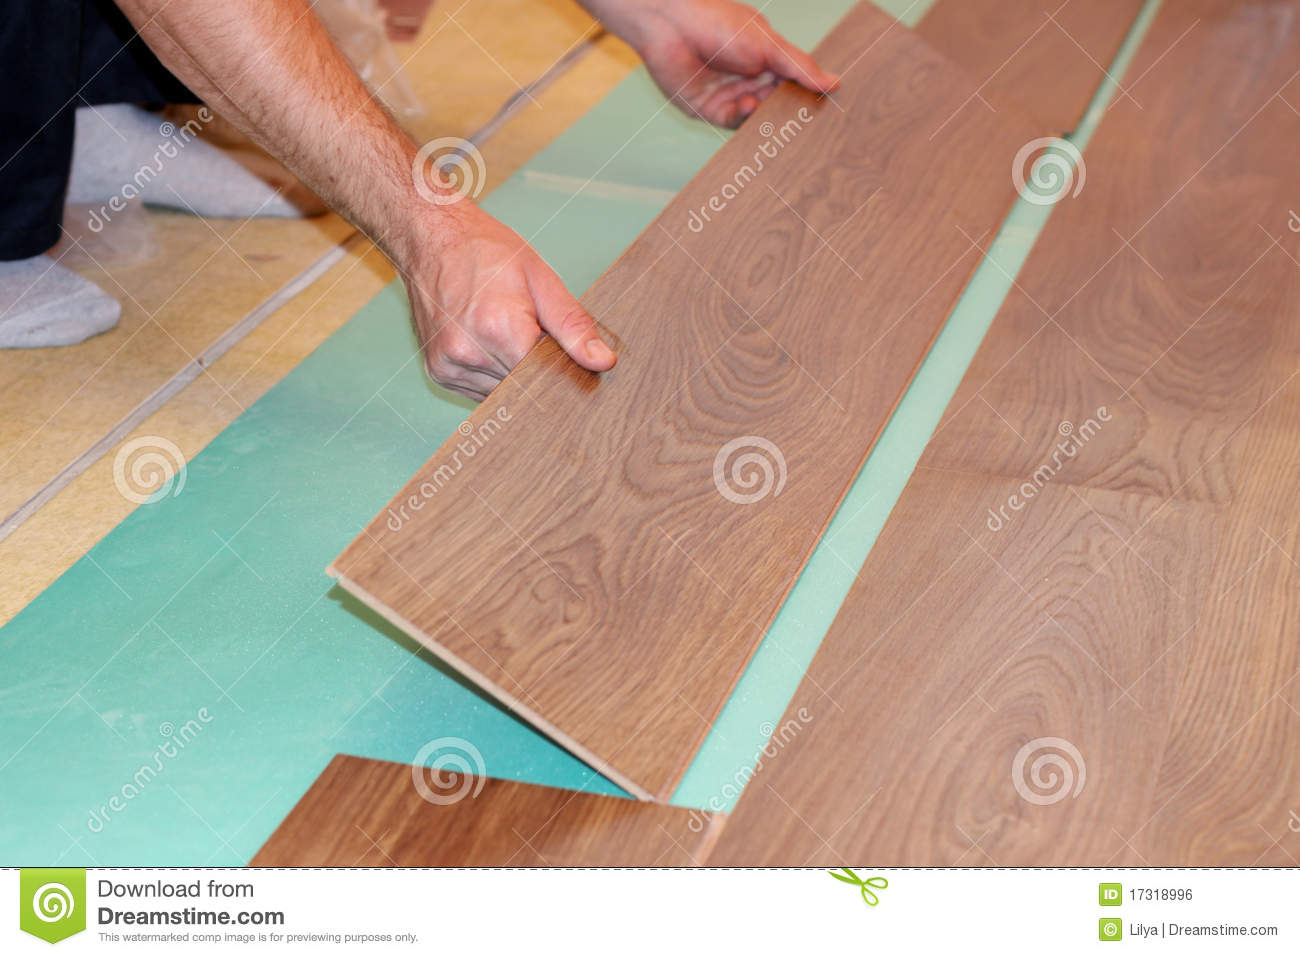 Laying laminate flooring royalty free stock image image for Laying flooring